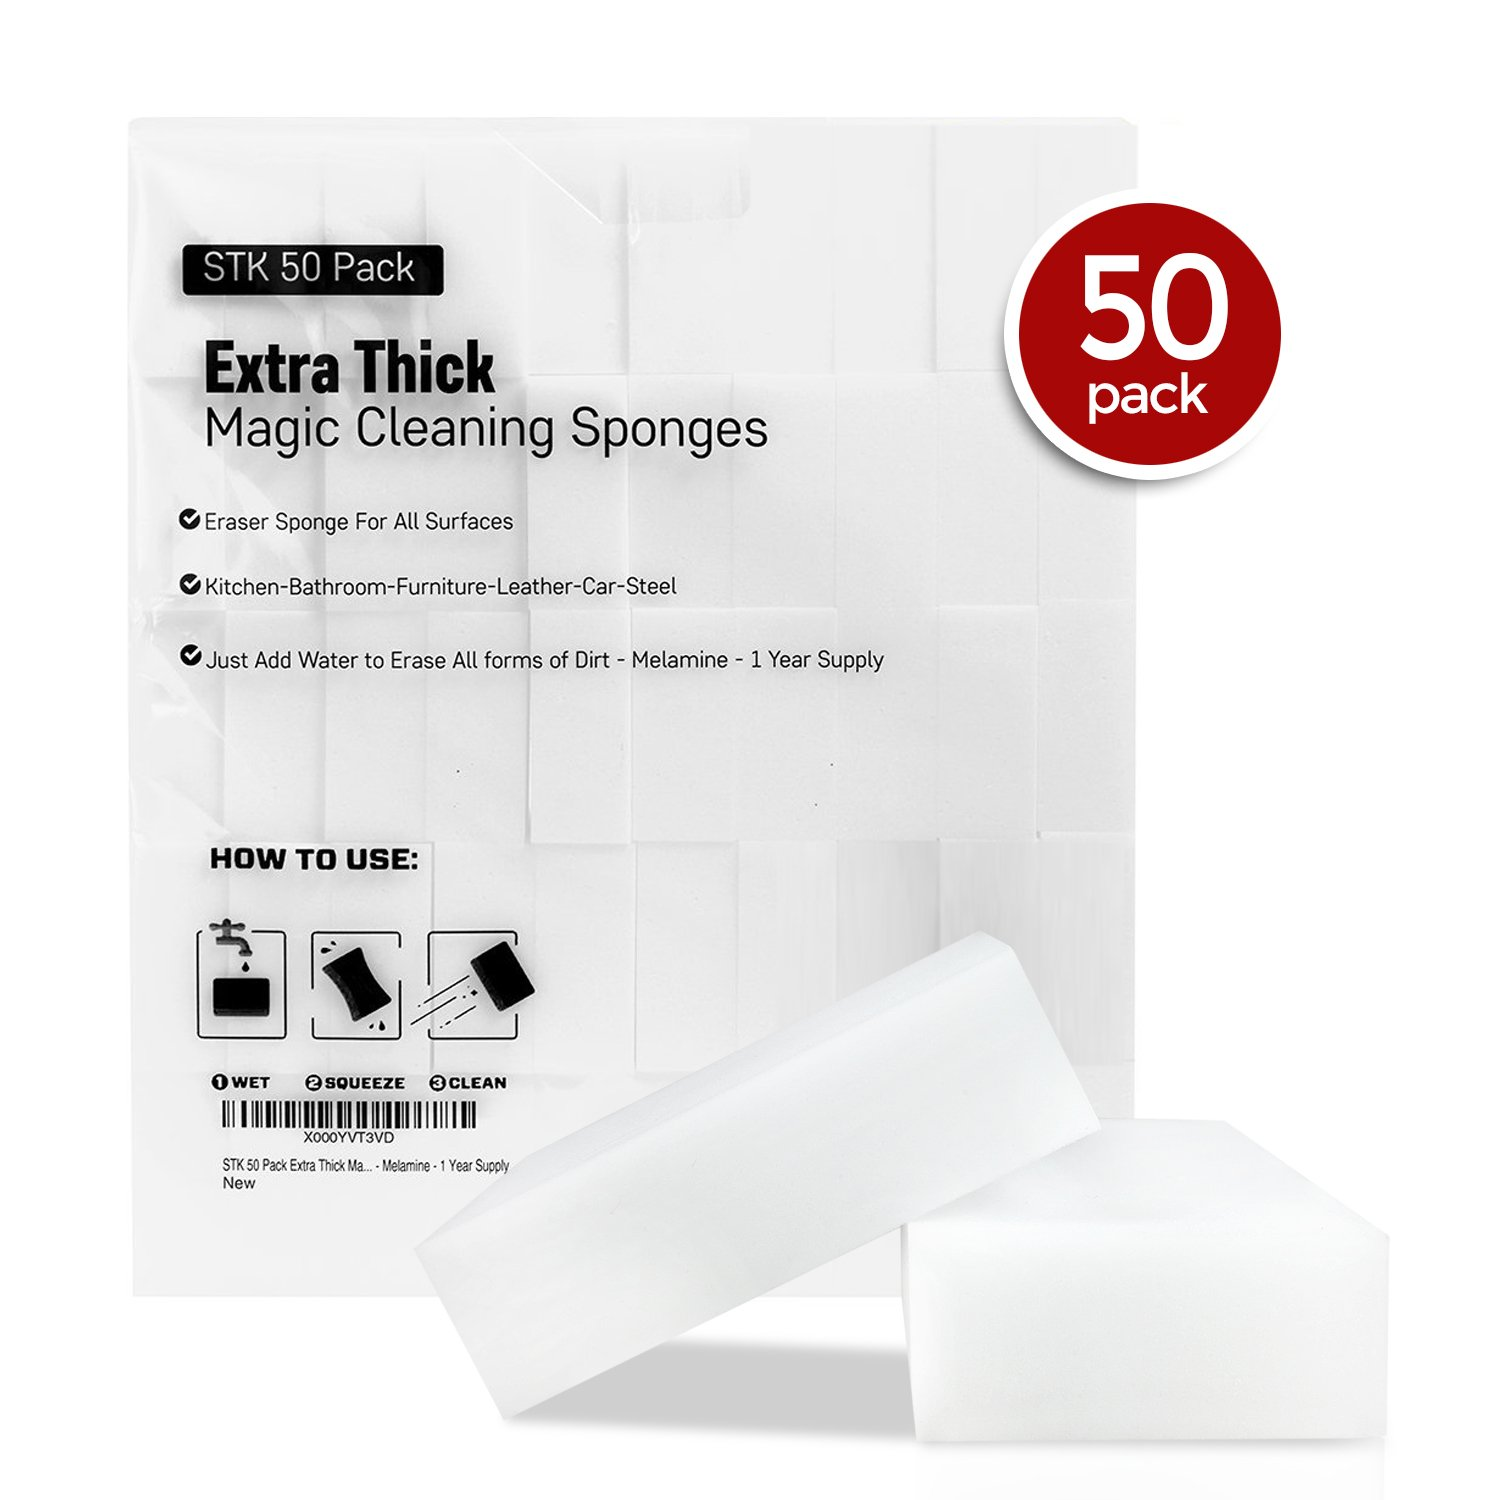 Amazon.com: STK 50 Pack Extra Thick Magic Cleaning Sponges - Eraser ...